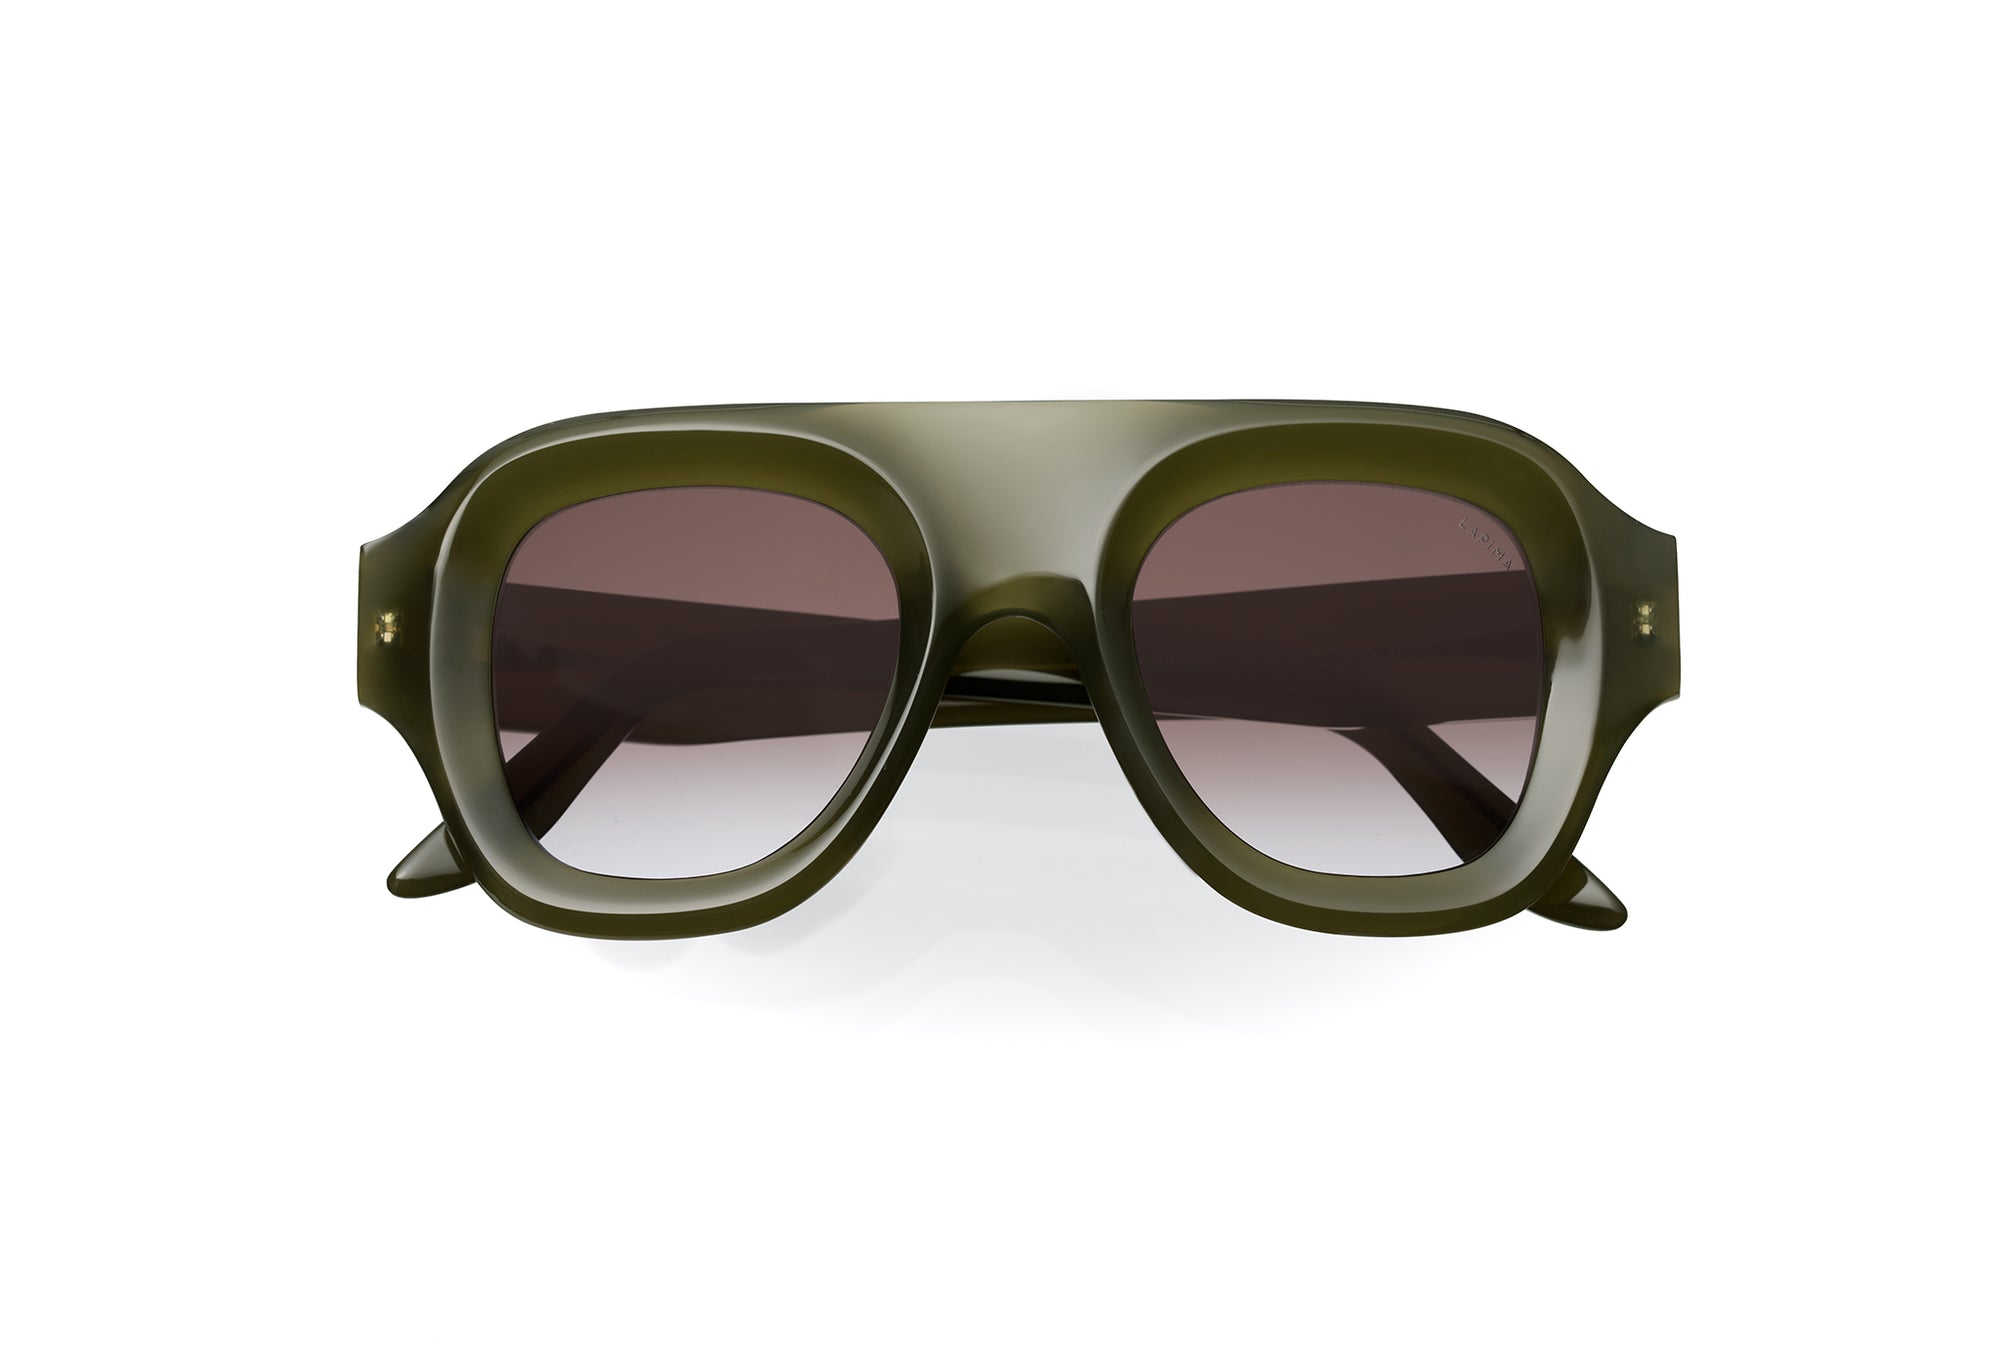 OLIVA GRADIENT - GREEN OLIVA ACETATE | BROWN GRADIENT LENSES